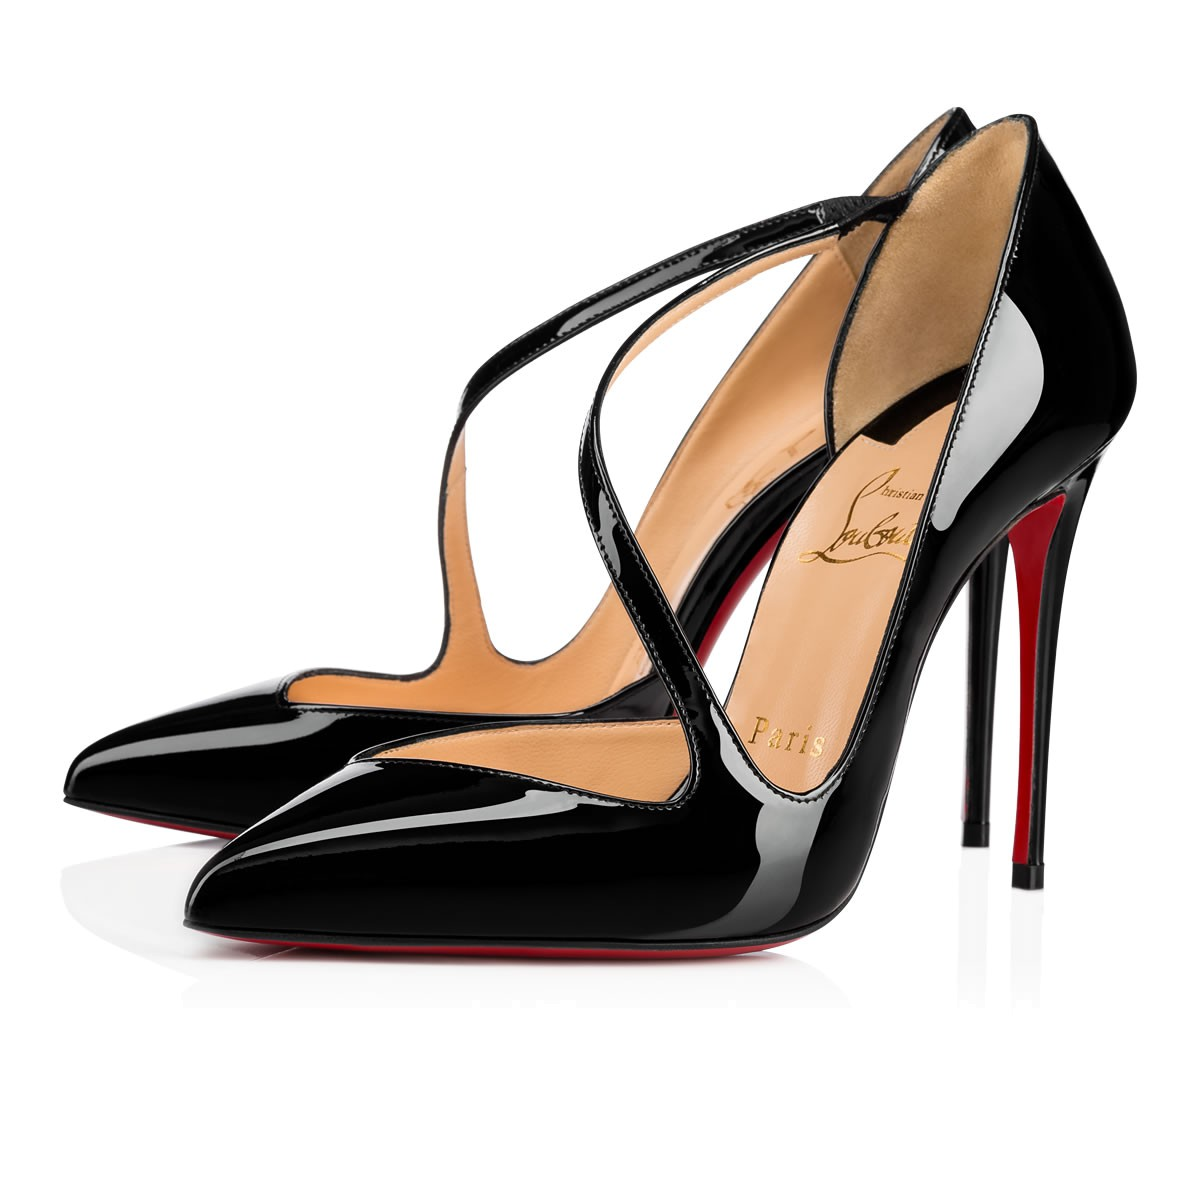 9a278453510 Jumping 100 Black Patent Leather - Women Shoes - Christian Louboutin